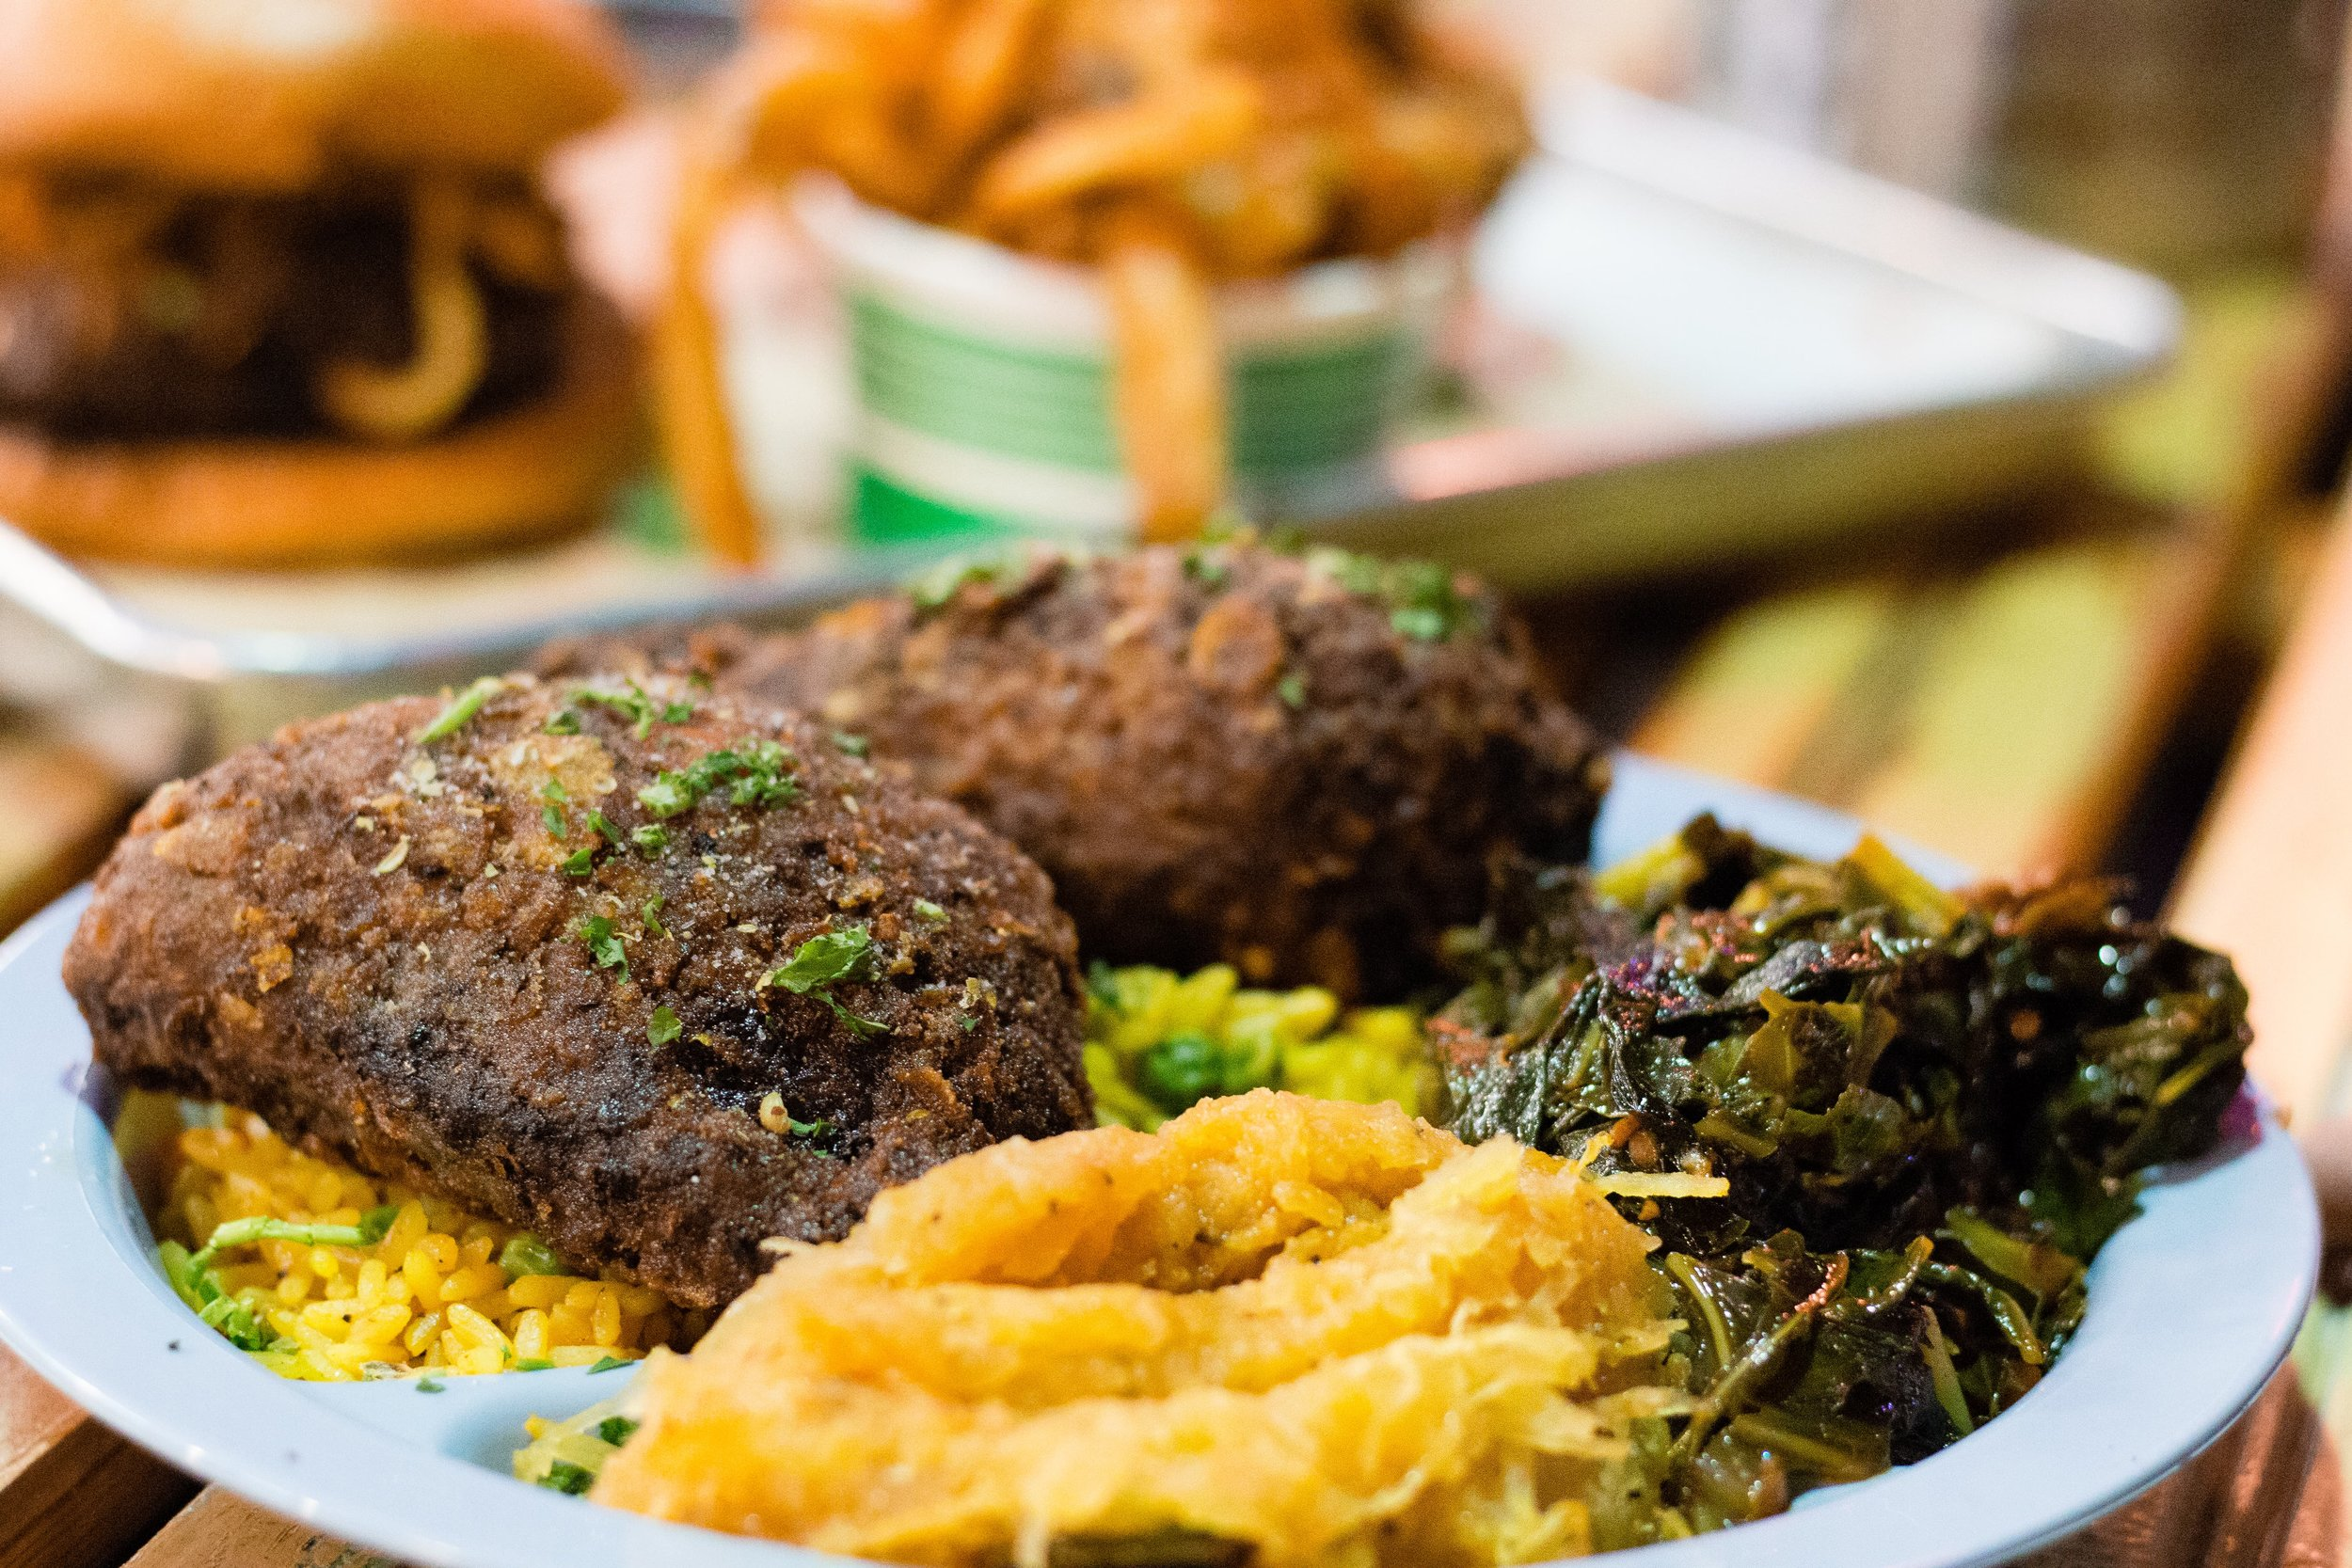 Spicy fried chicken served with sweet potatoes, collard greens, and South African yellow rice